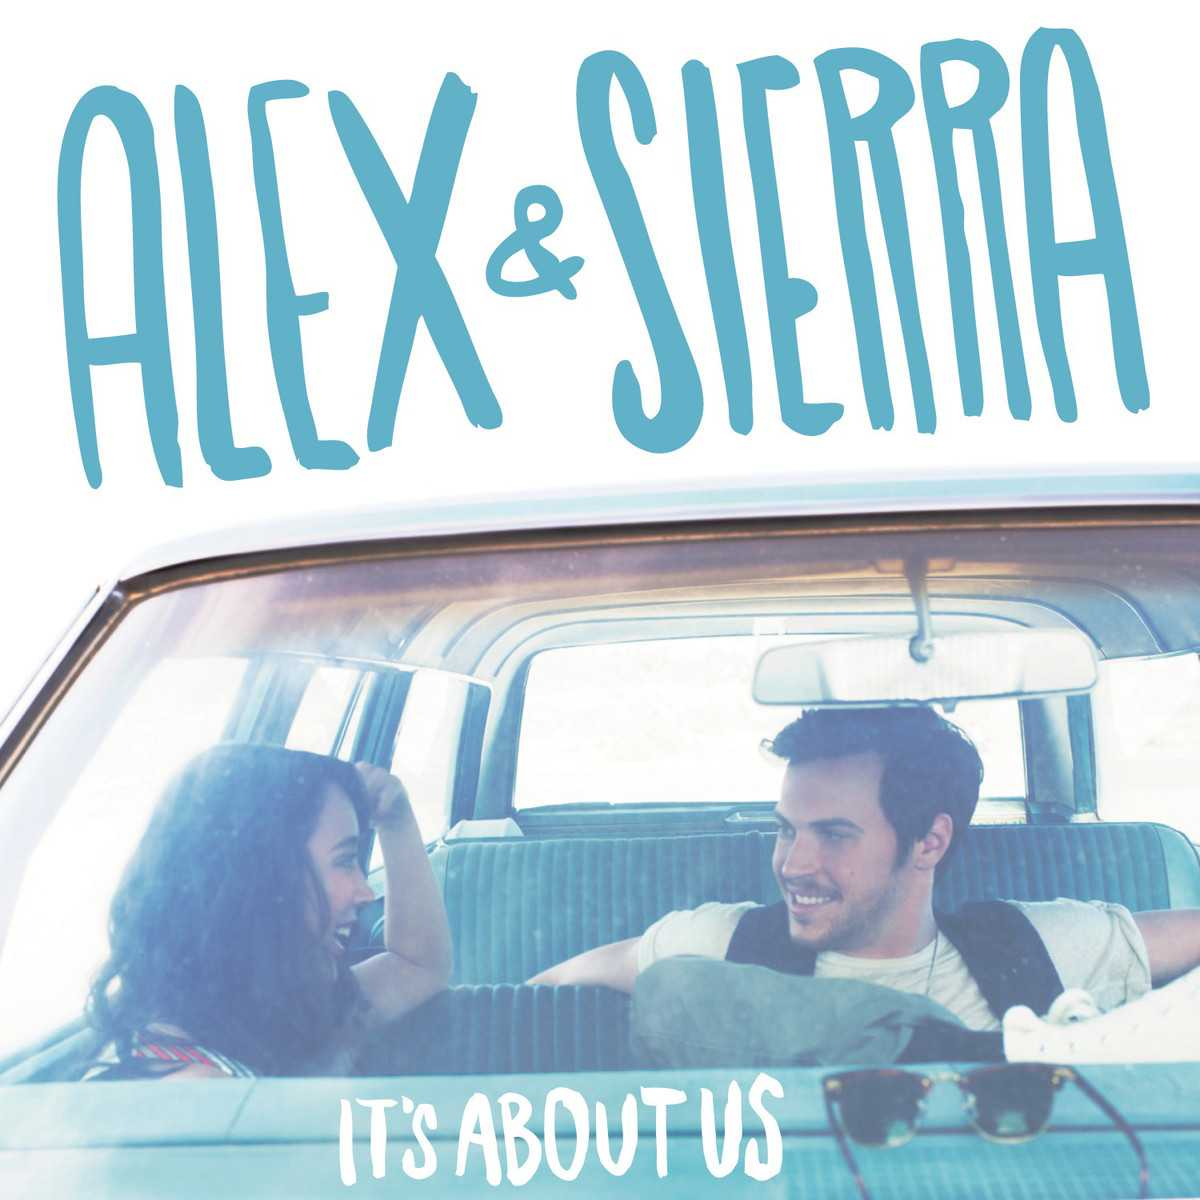 Alex & Sierra Release 'It's About Us' Full Album Stream | alex & sierra